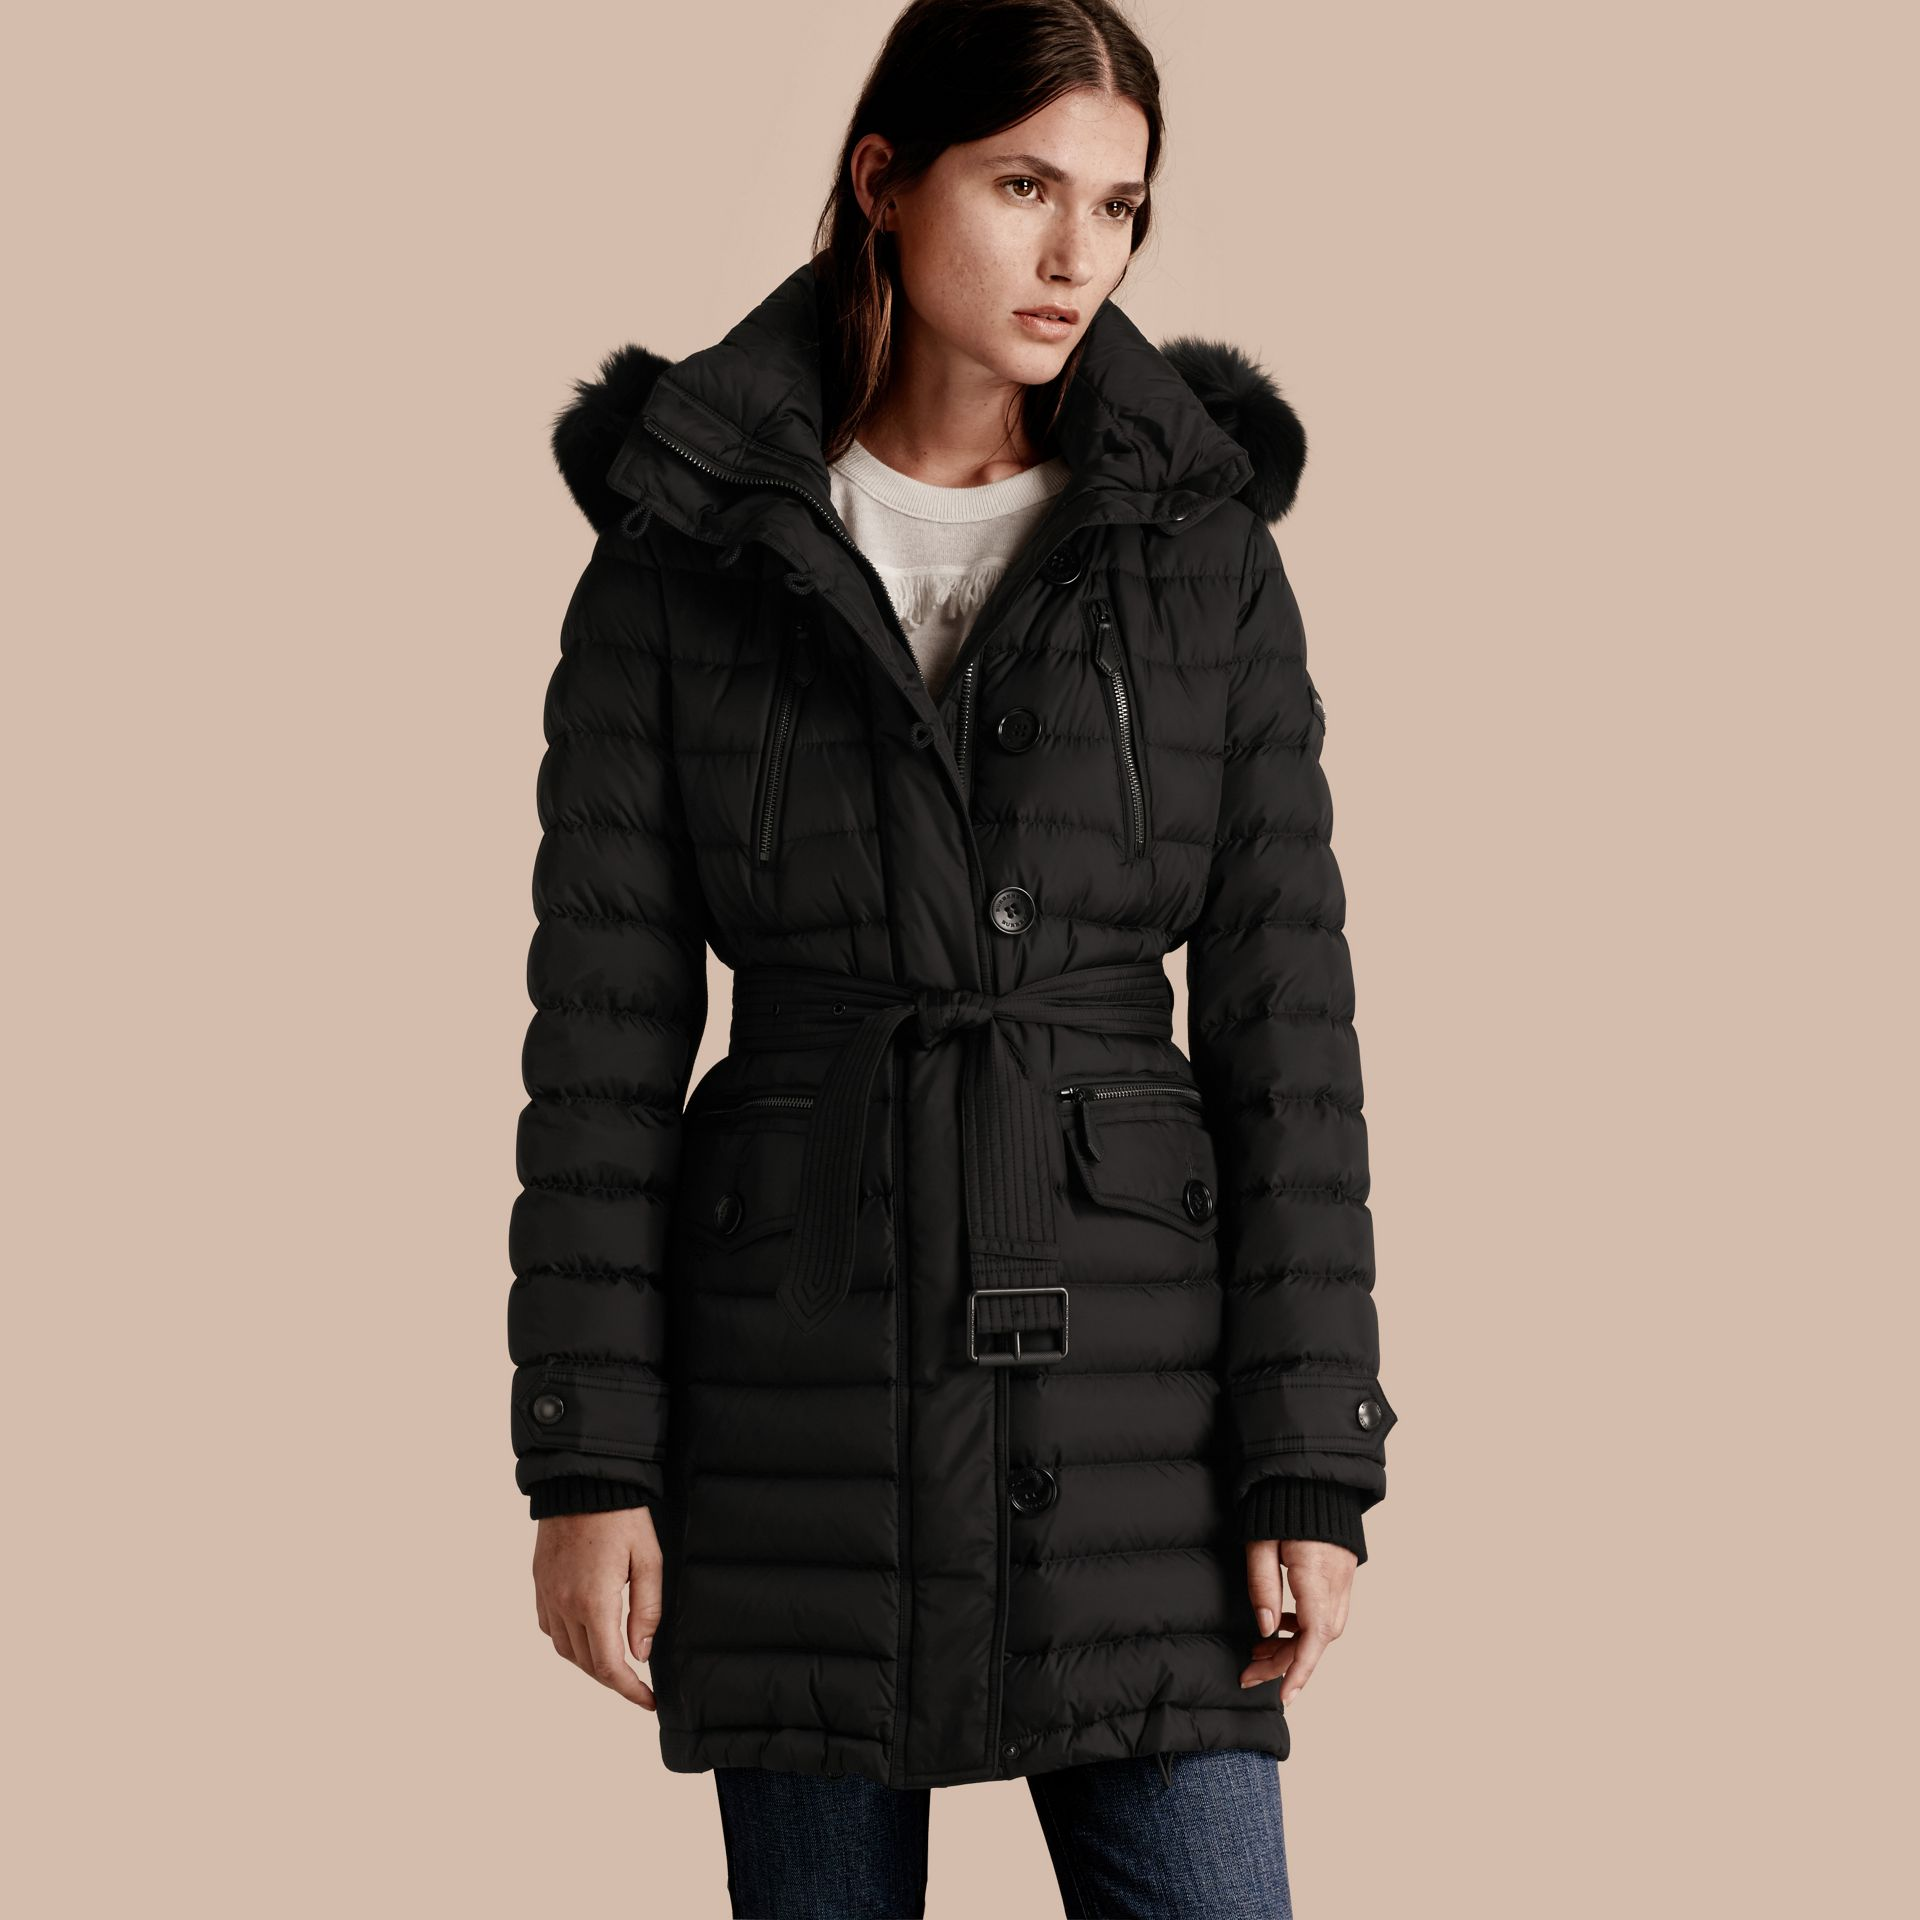 Black Down-filled Parka with Detachable Fox Fur Trim Black - gallery image 1